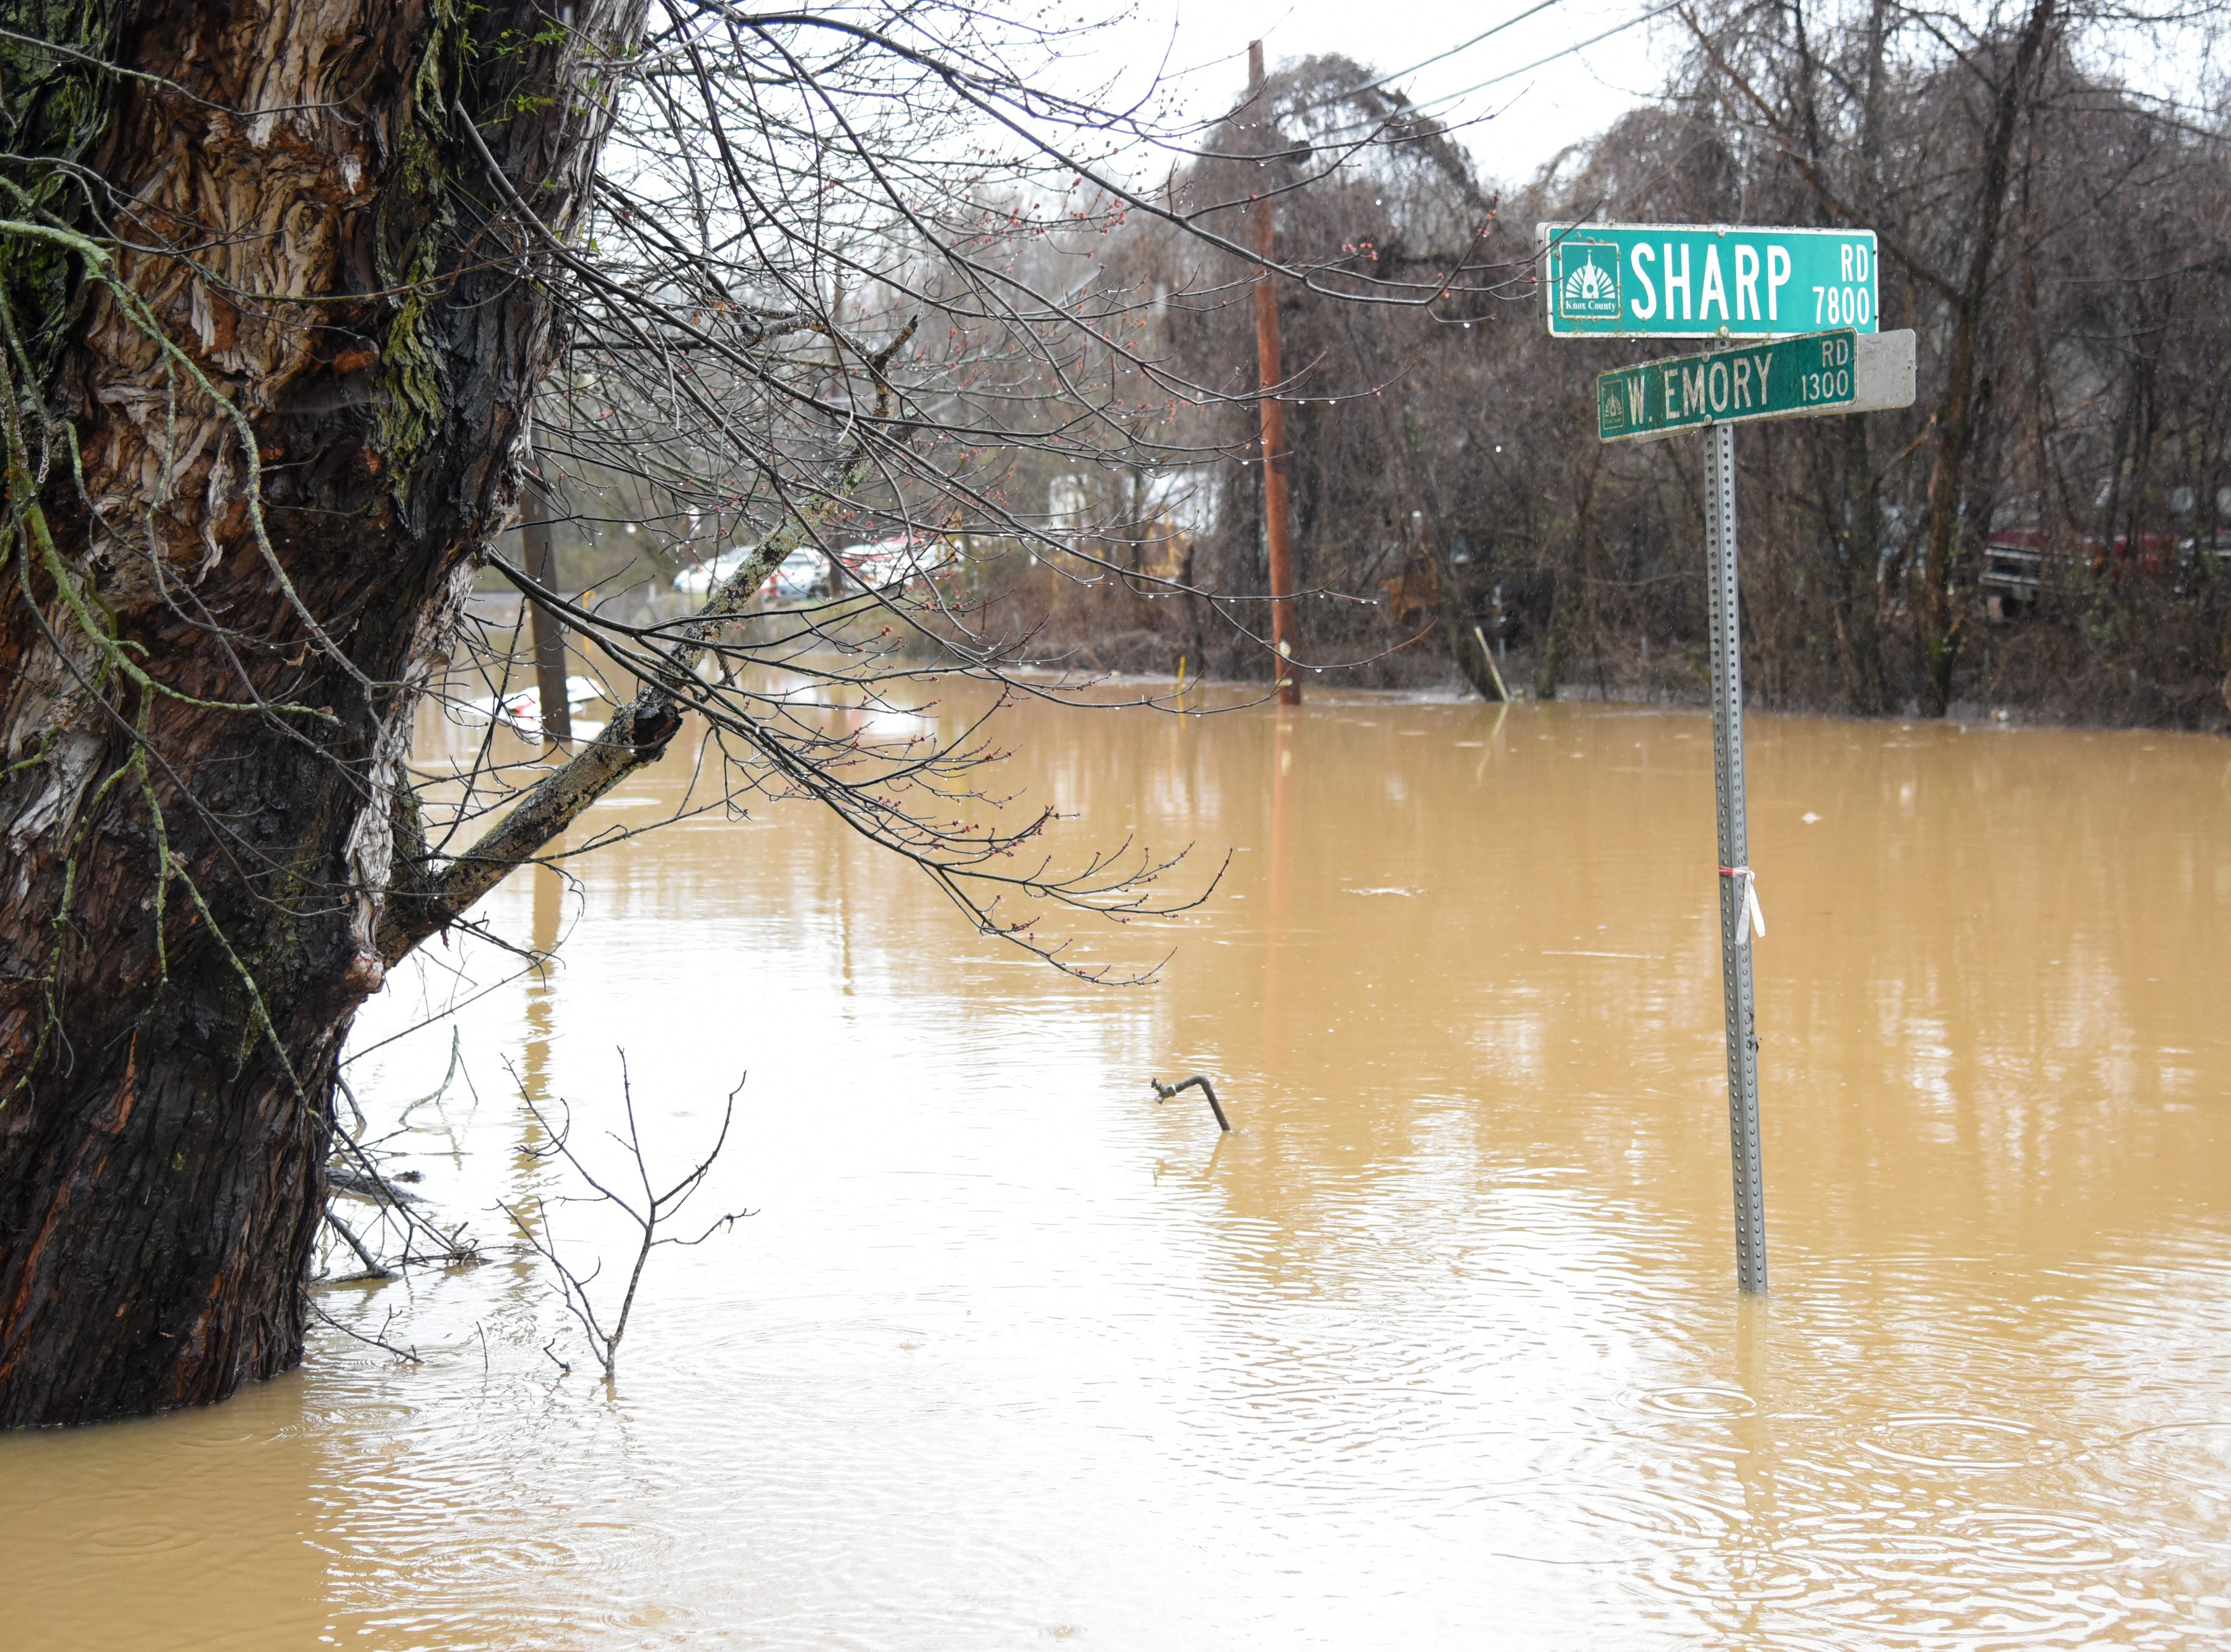 Beaver Creek overflows due to flooding at West Emory Road and Sharp Road in Powell Saturday Feb. 23, 2019. The Knoxville area could see between 2 and 3 inches of rain through the weekend.